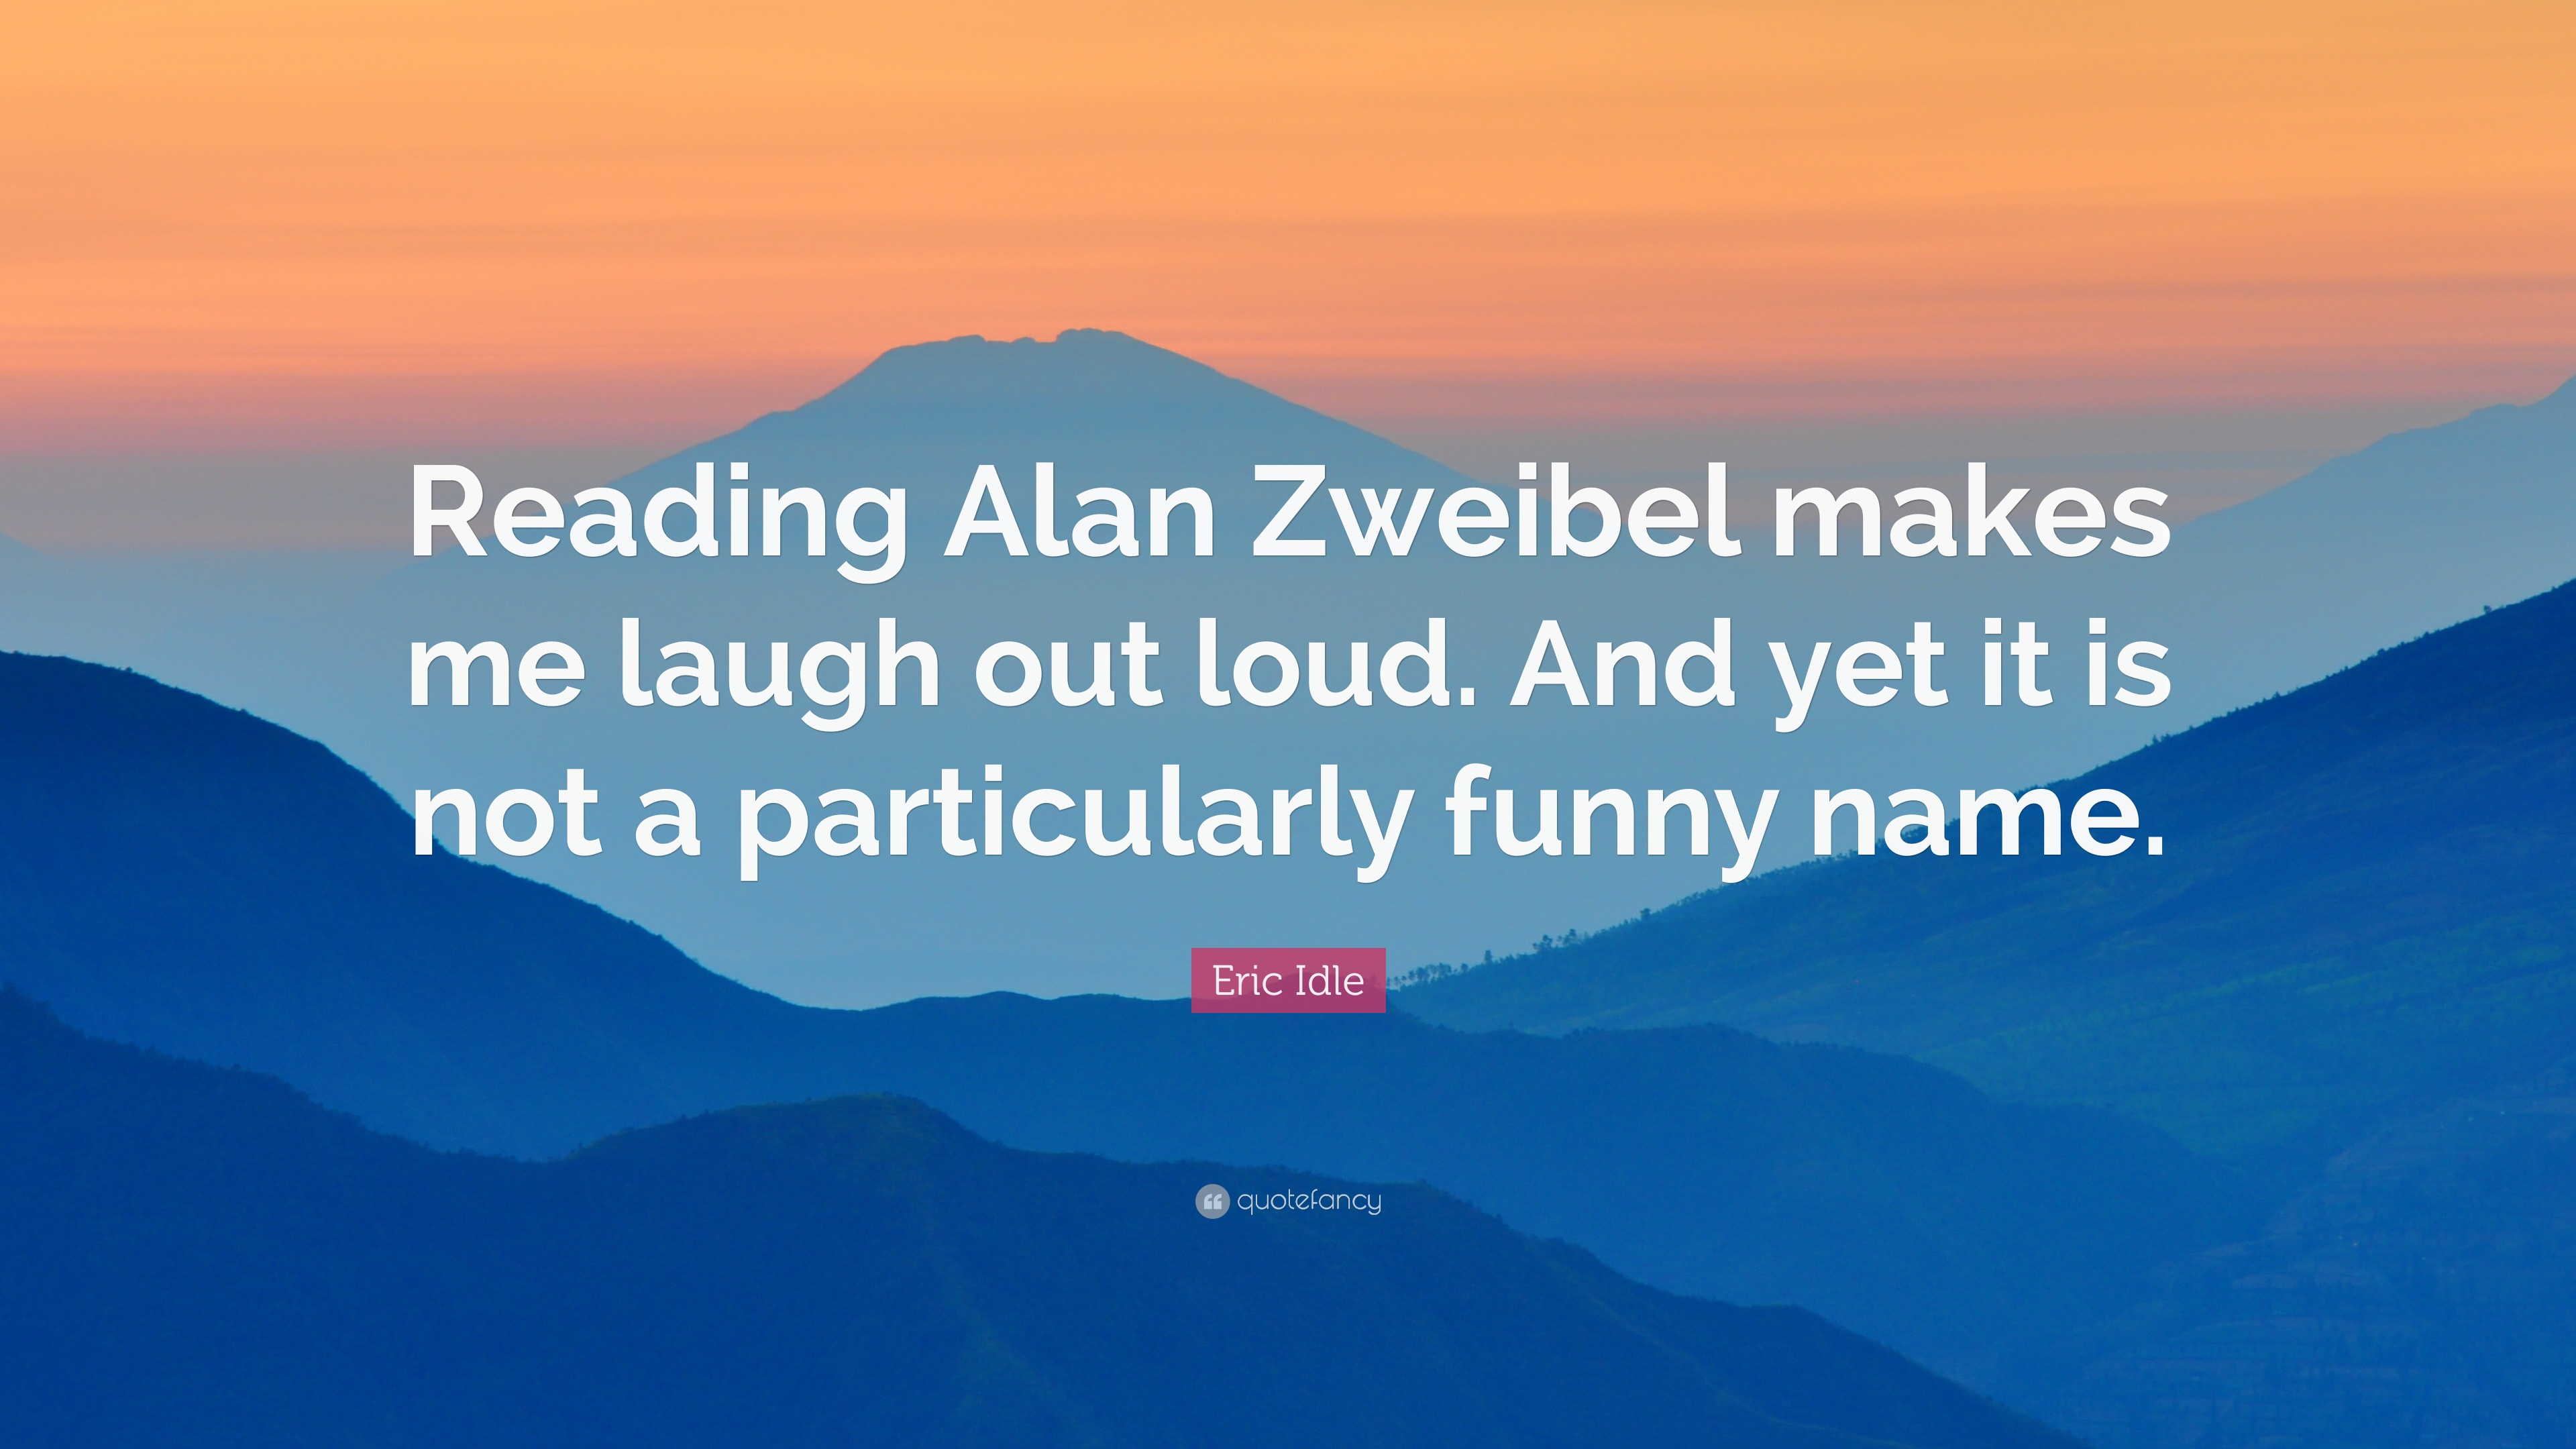 Eric Idle Quote Reading Alan Zweibel Makes Me Laugh Out Loud And Yet